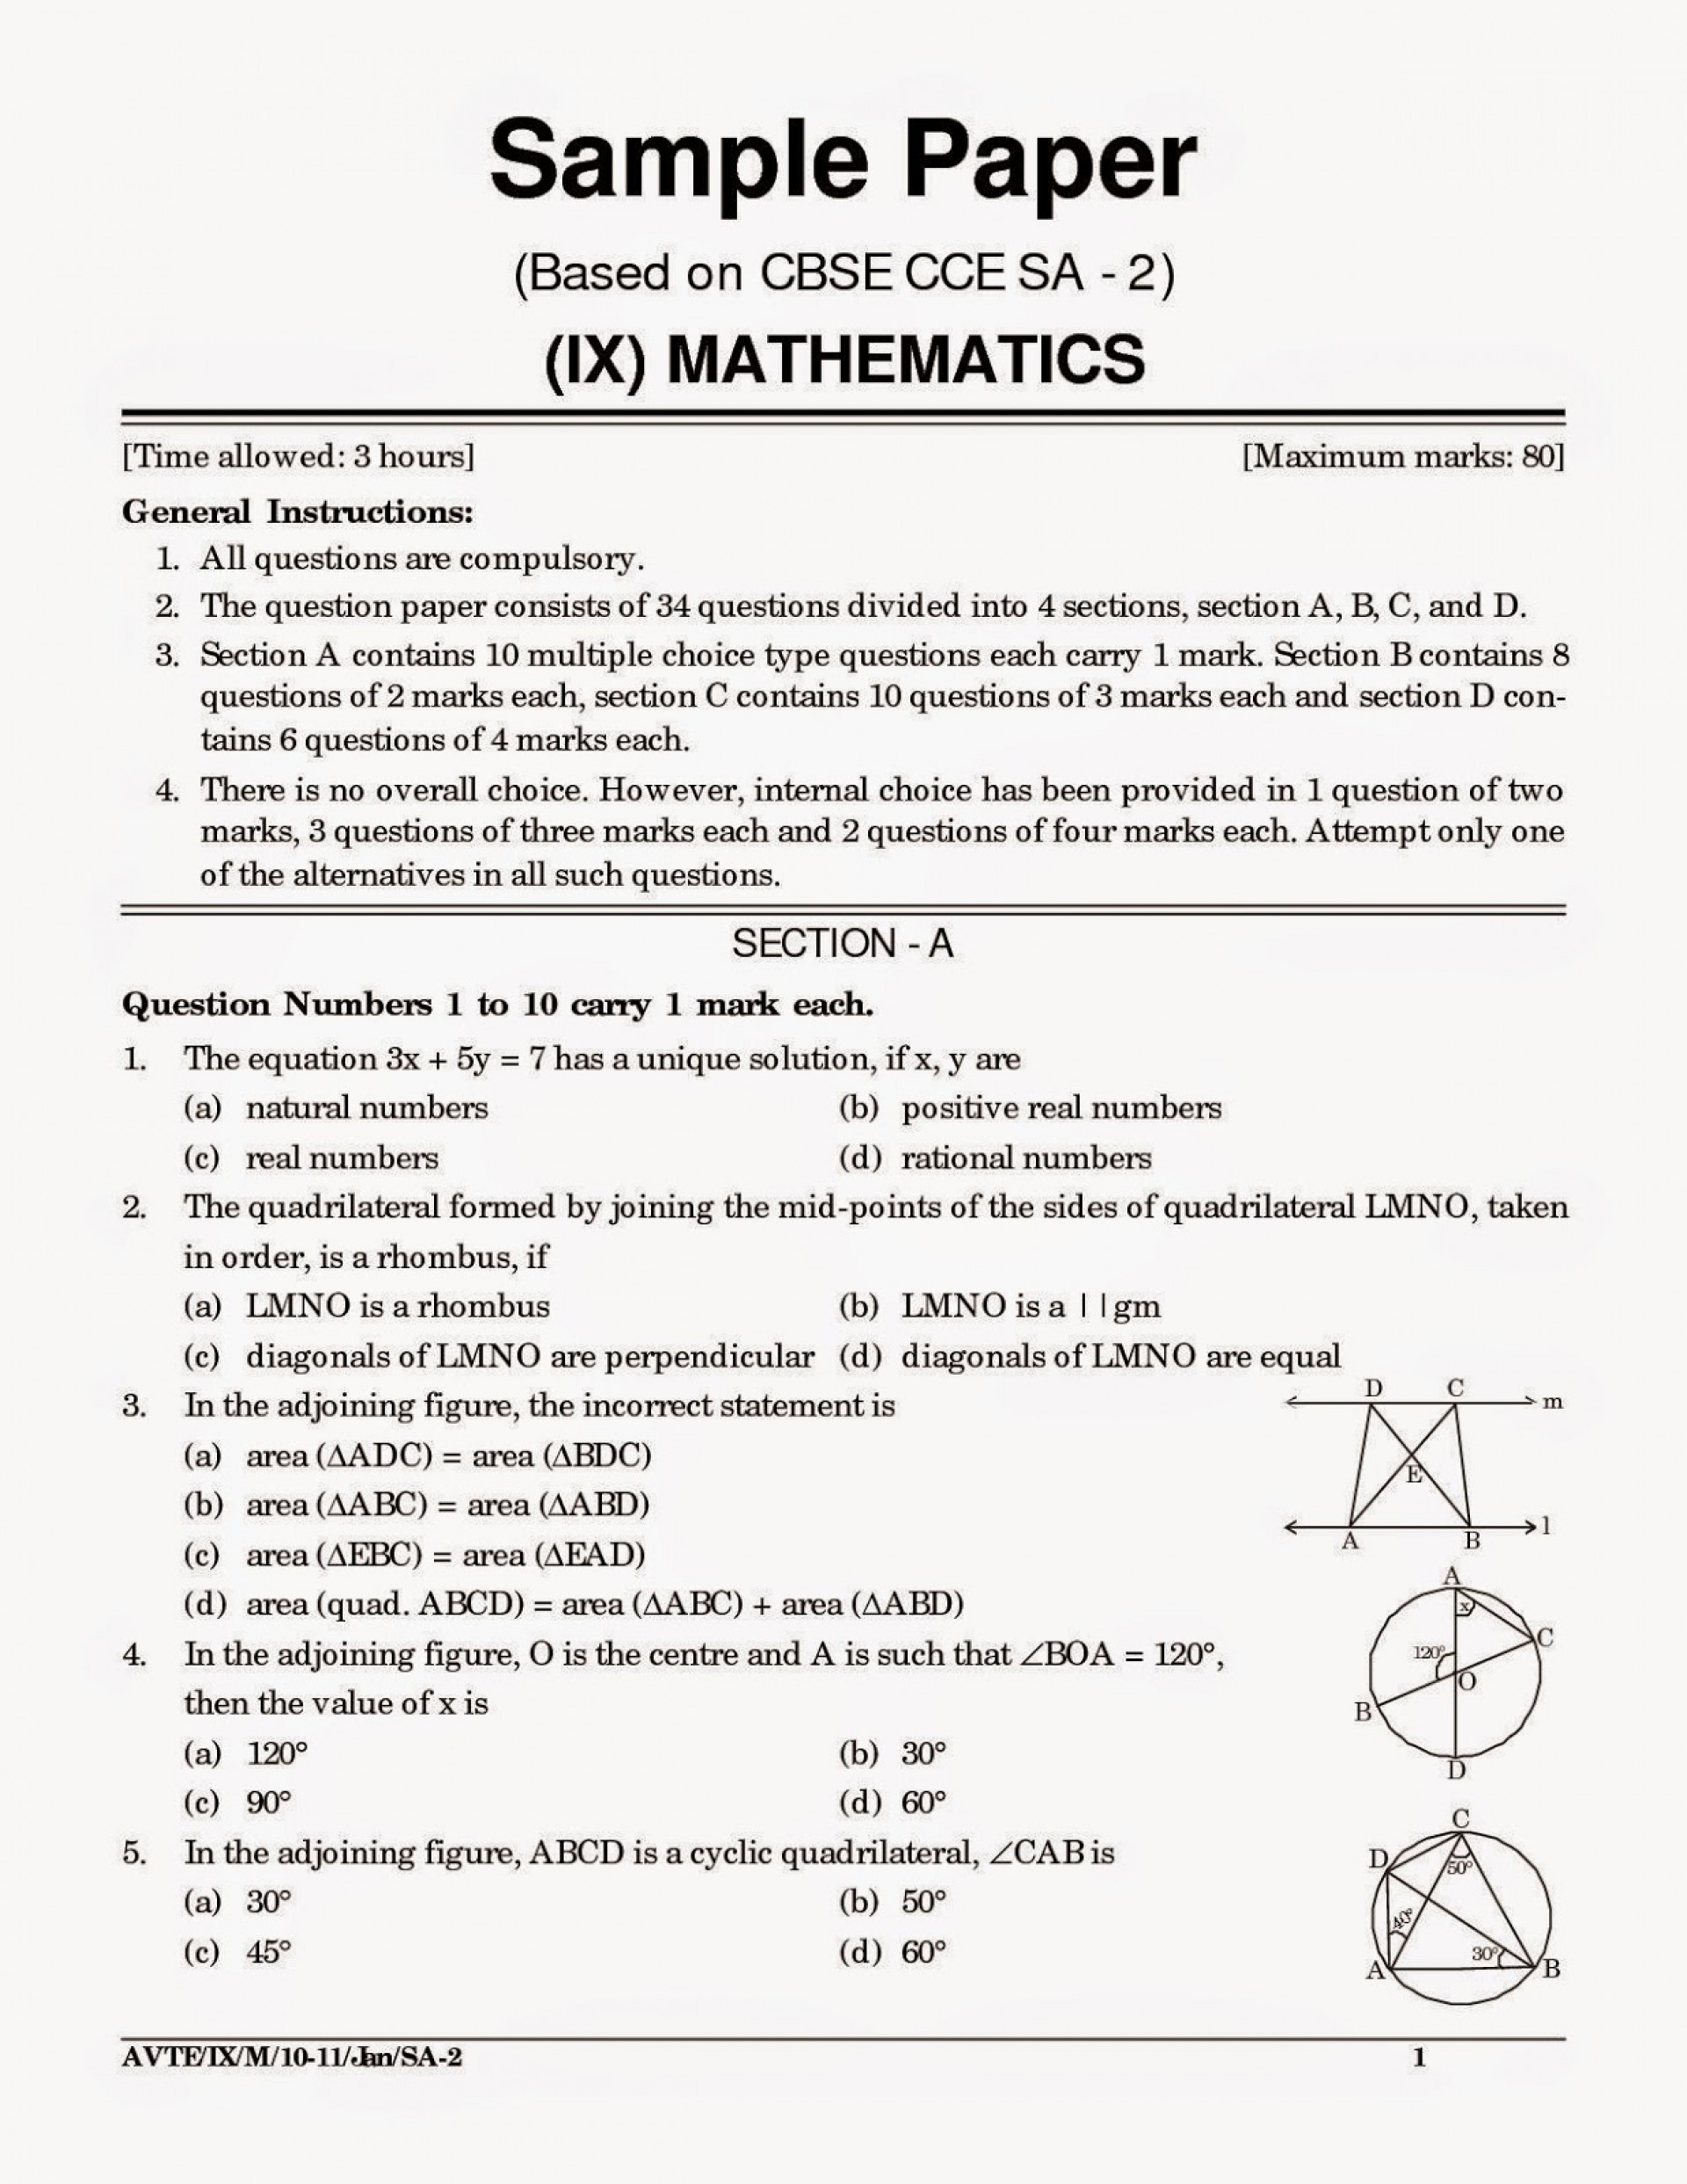 019 Sample Argumentative Essay Cbse20sample20papers20for20class201020mathematics20and20science Jpg Awful Outline Middle School Apa Format Ap Argument Prompts 1920